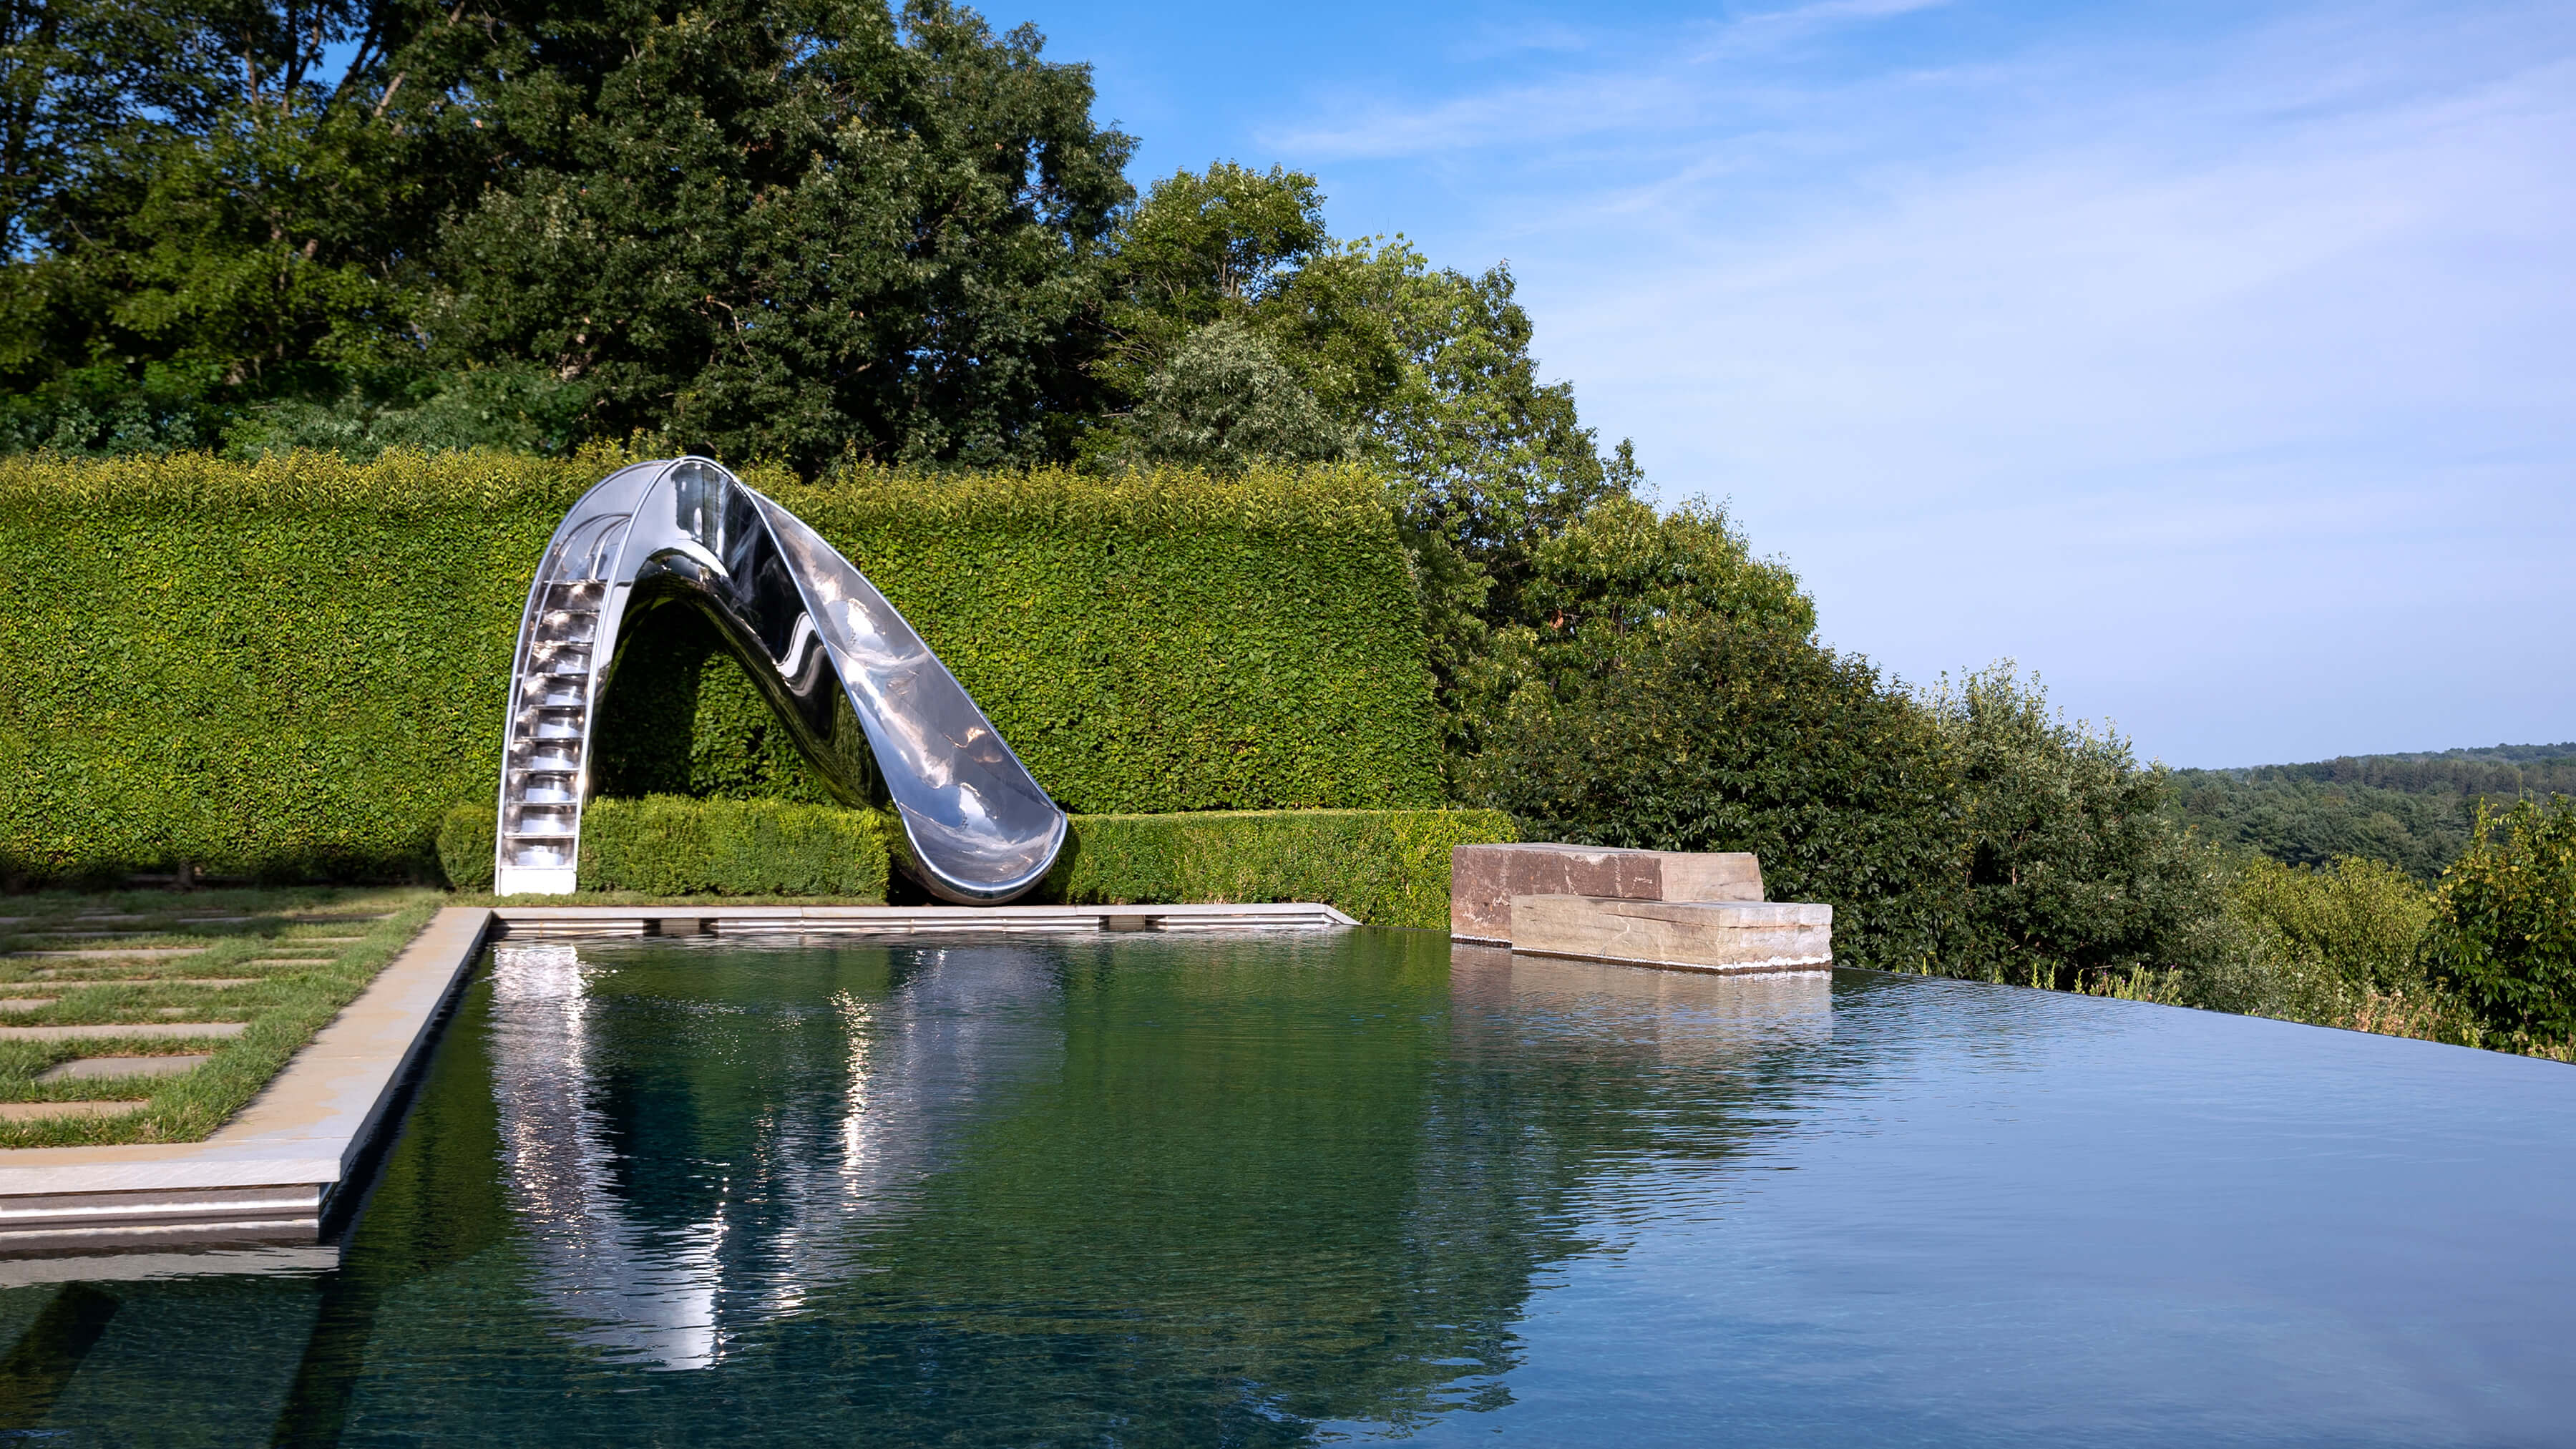 Luxury metal water slide built to US and EU safety standards.